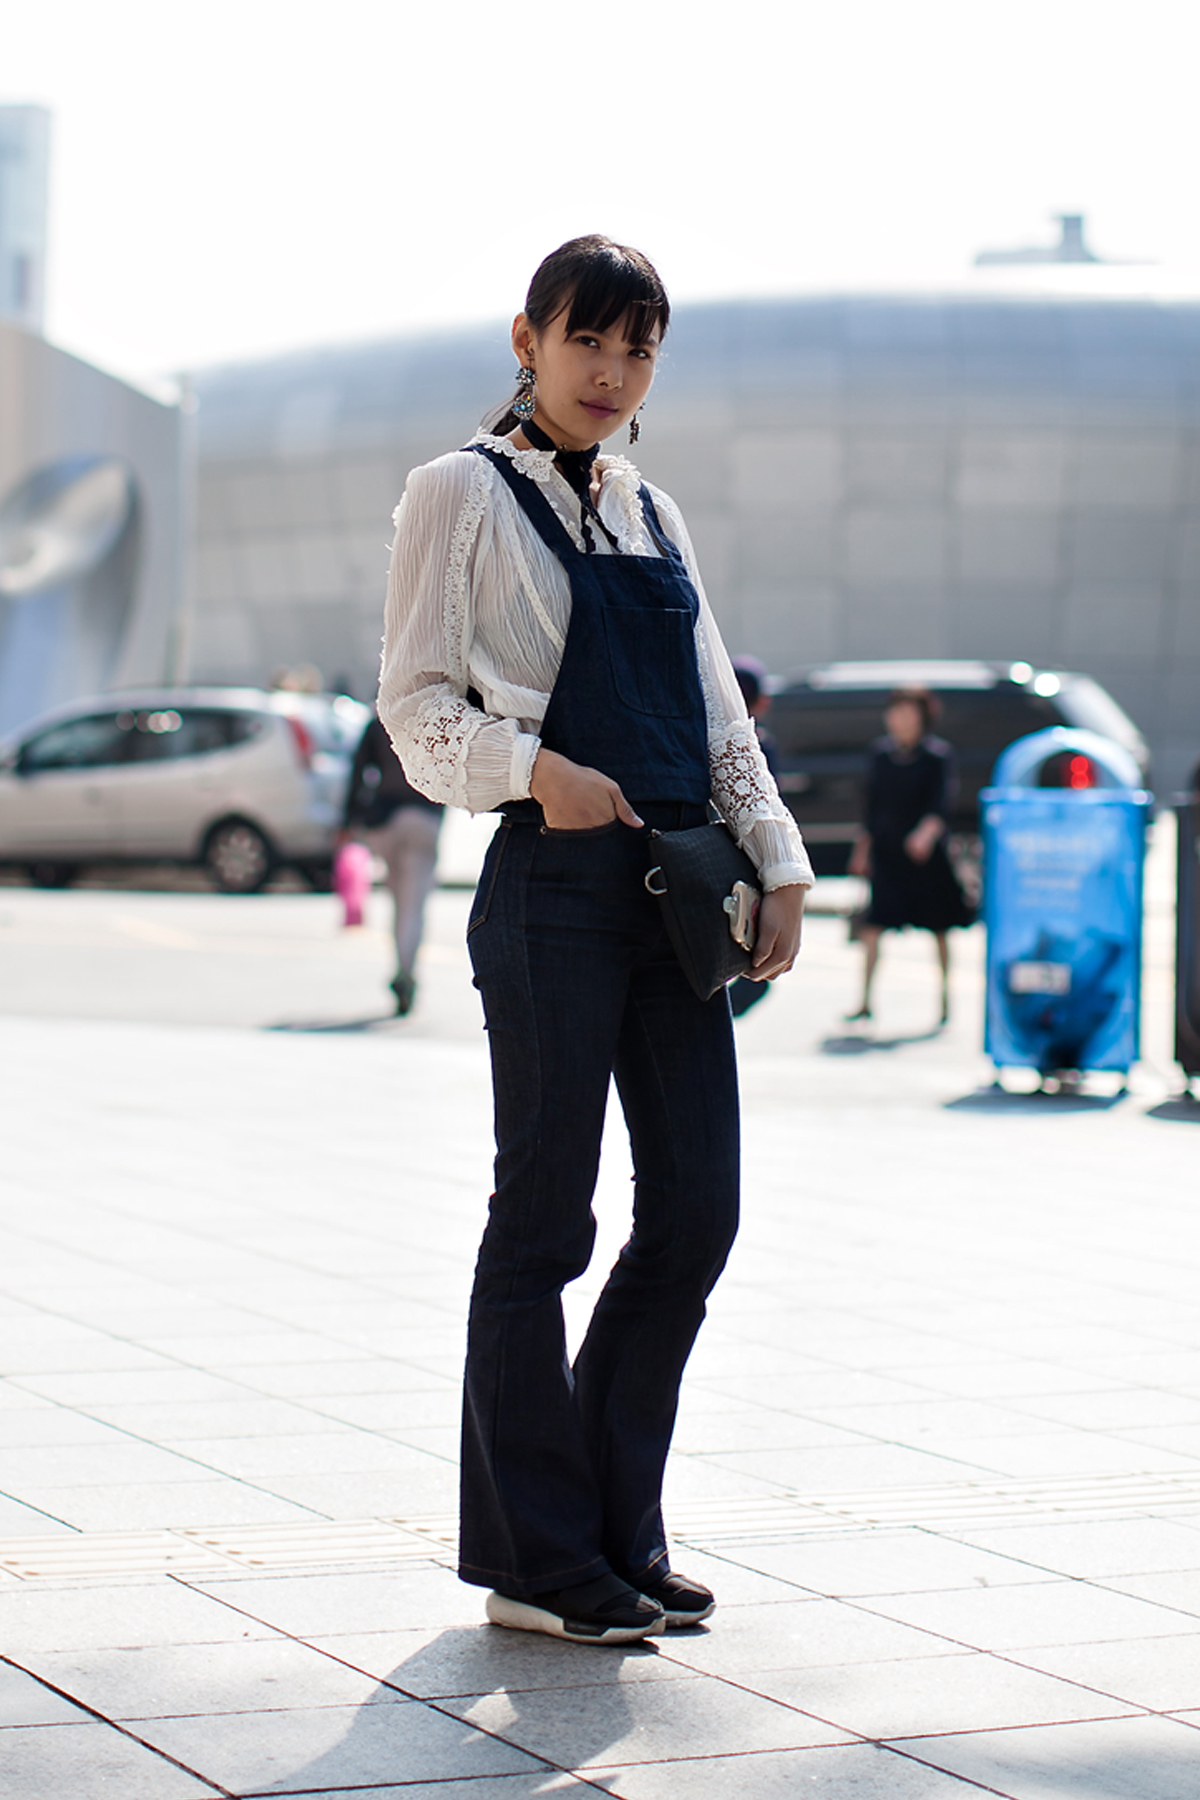 On the street… Wi Dayeon Seoul fashion week 2016 SS